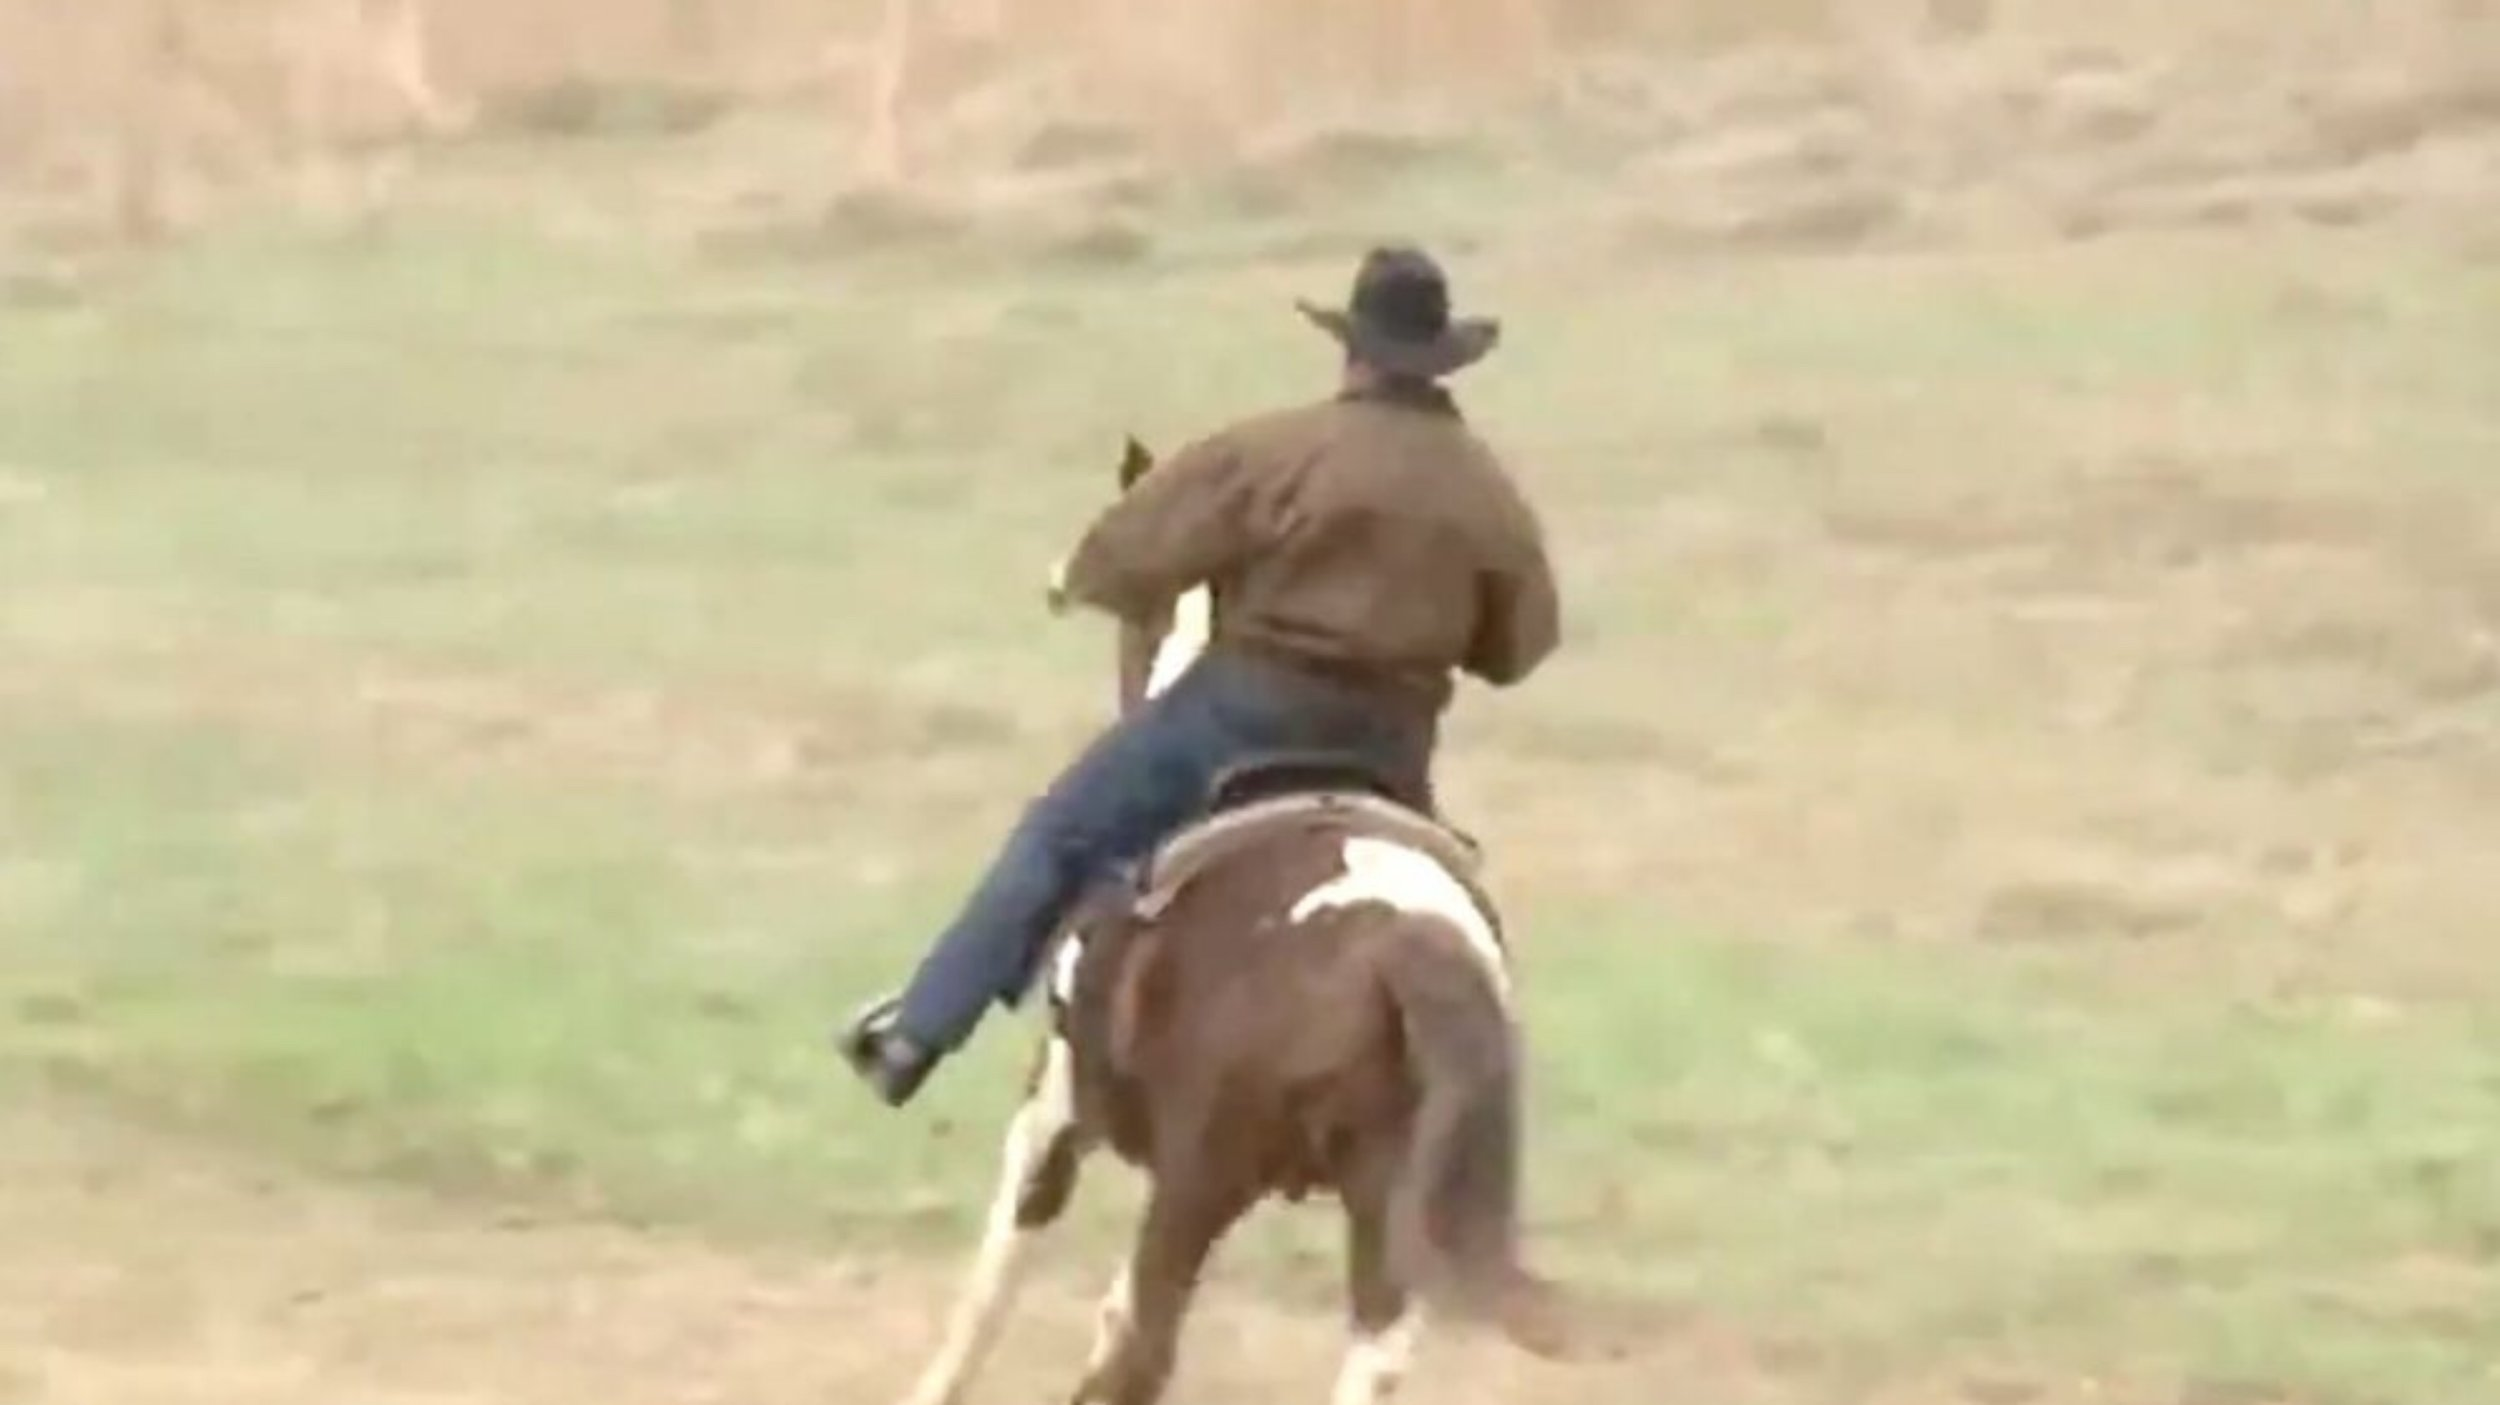 A courageous Roy Moore refusing to ride off quietly into the sunset.